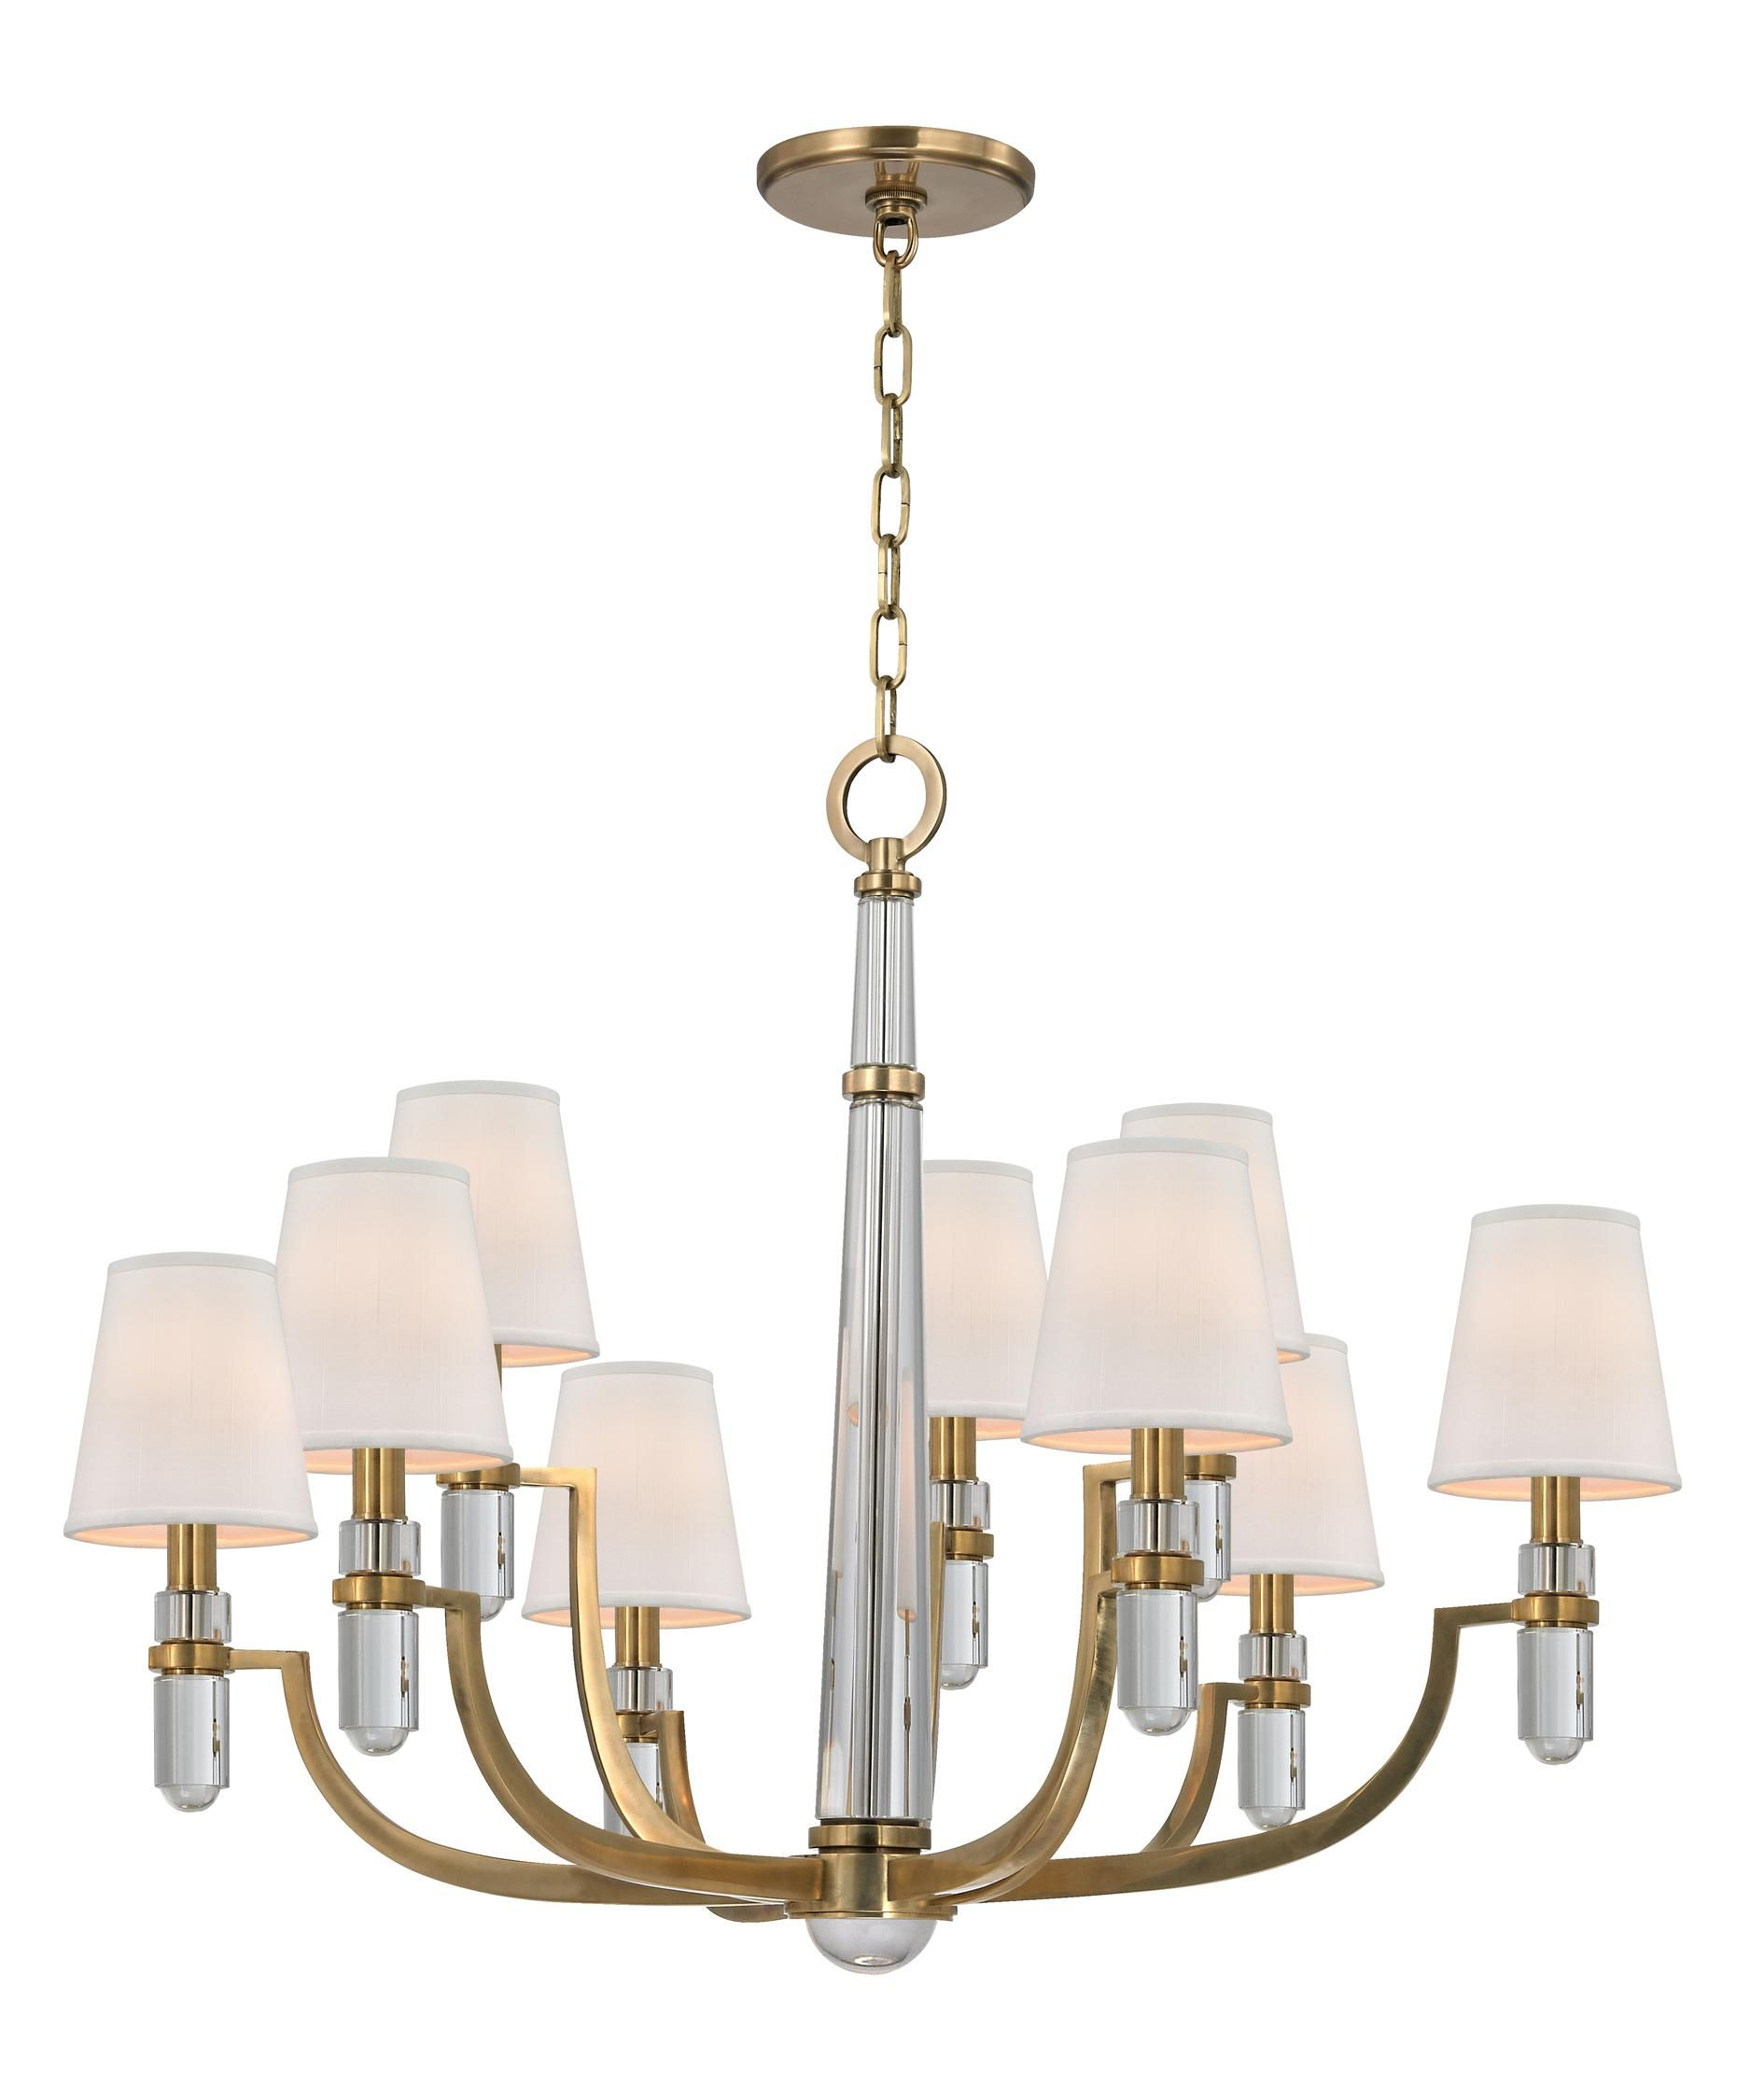 Hudson Valley 989 Dayton 33 Inch Chandelier | Capitol Lighting 1-800lighting.com